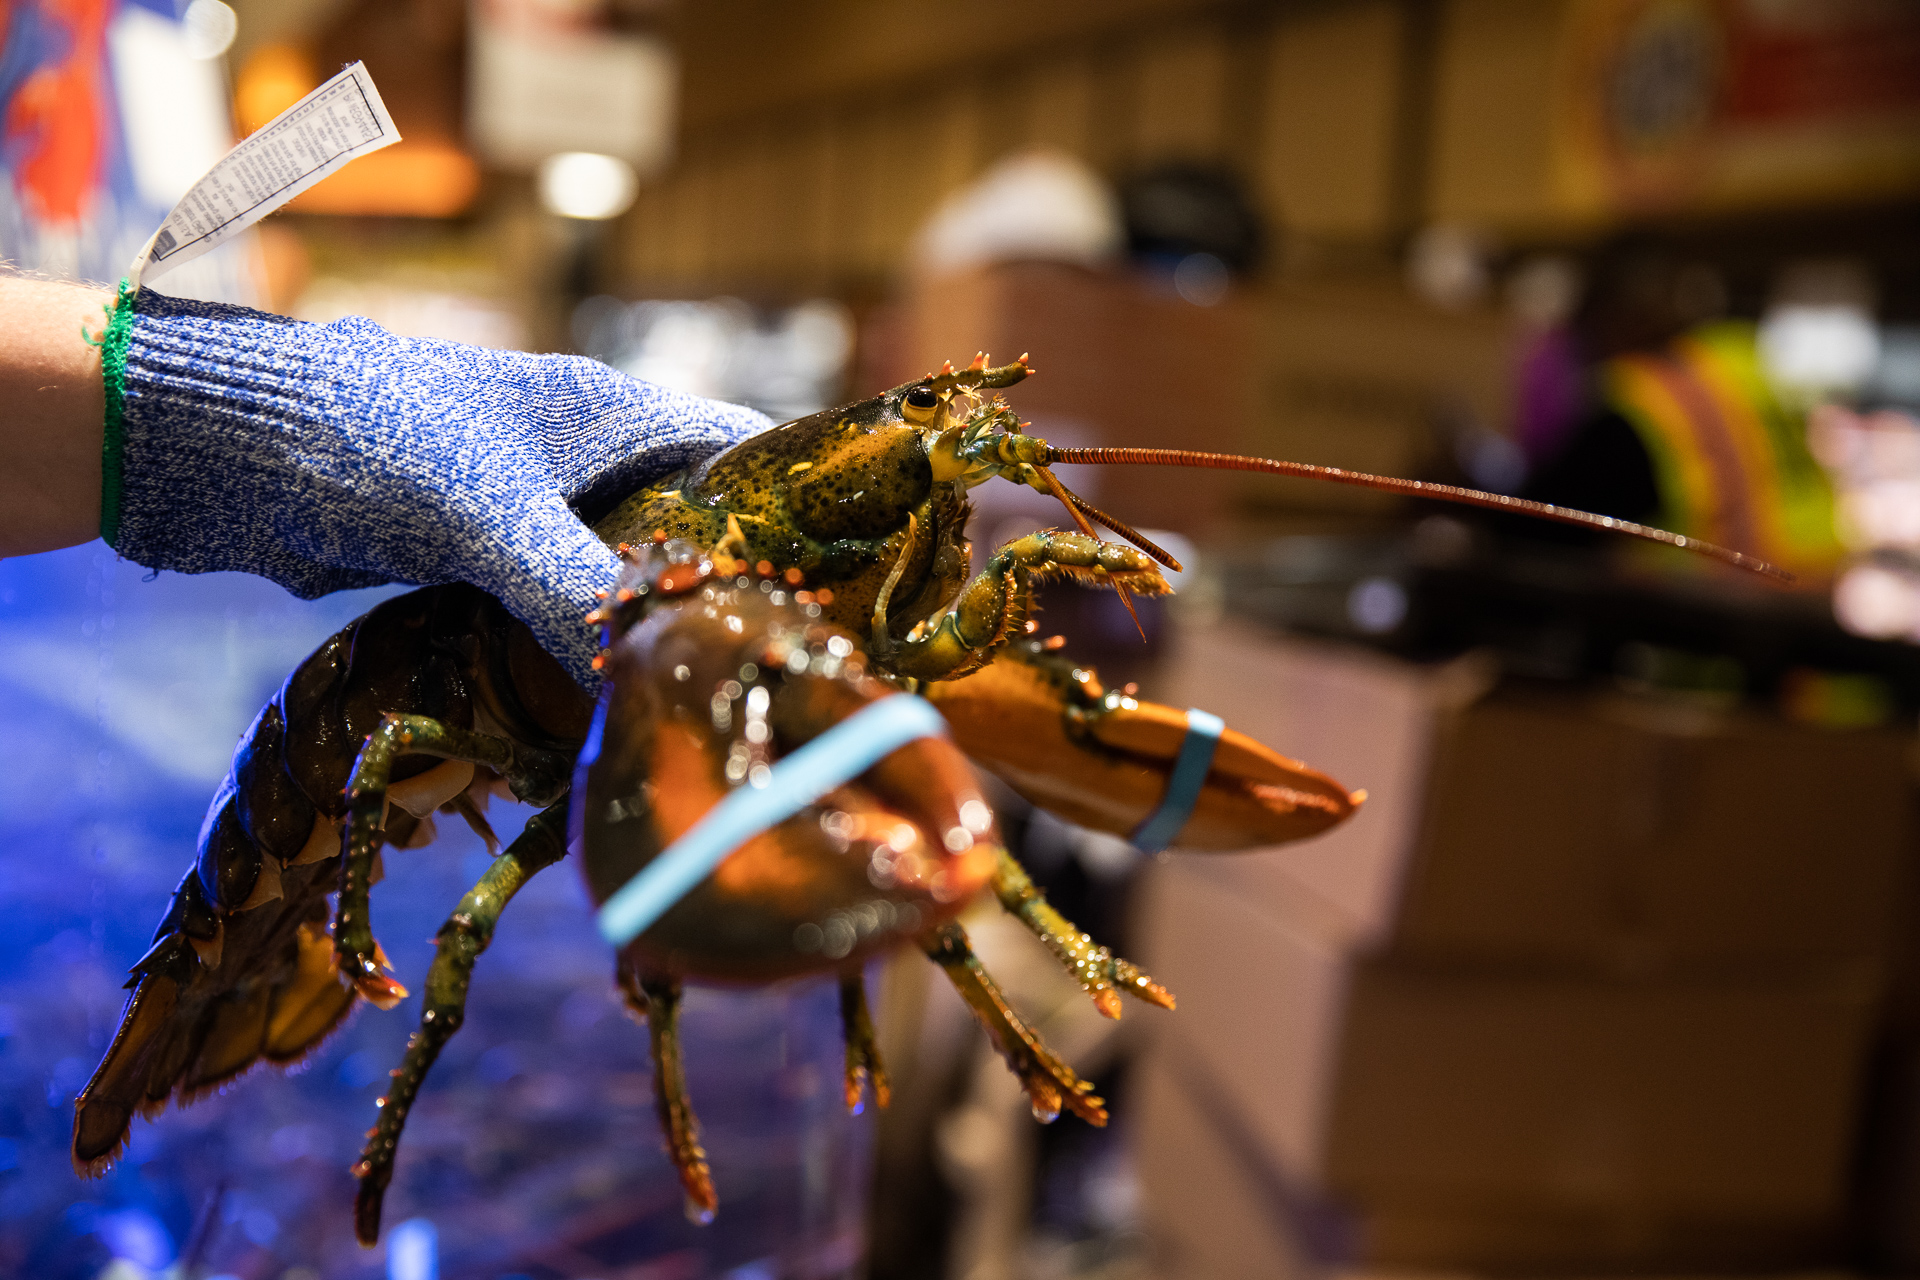 Wegmans' seafood department will steam lobster or other shellfish for you if you wish. Eagle photo by Paul Frangipane